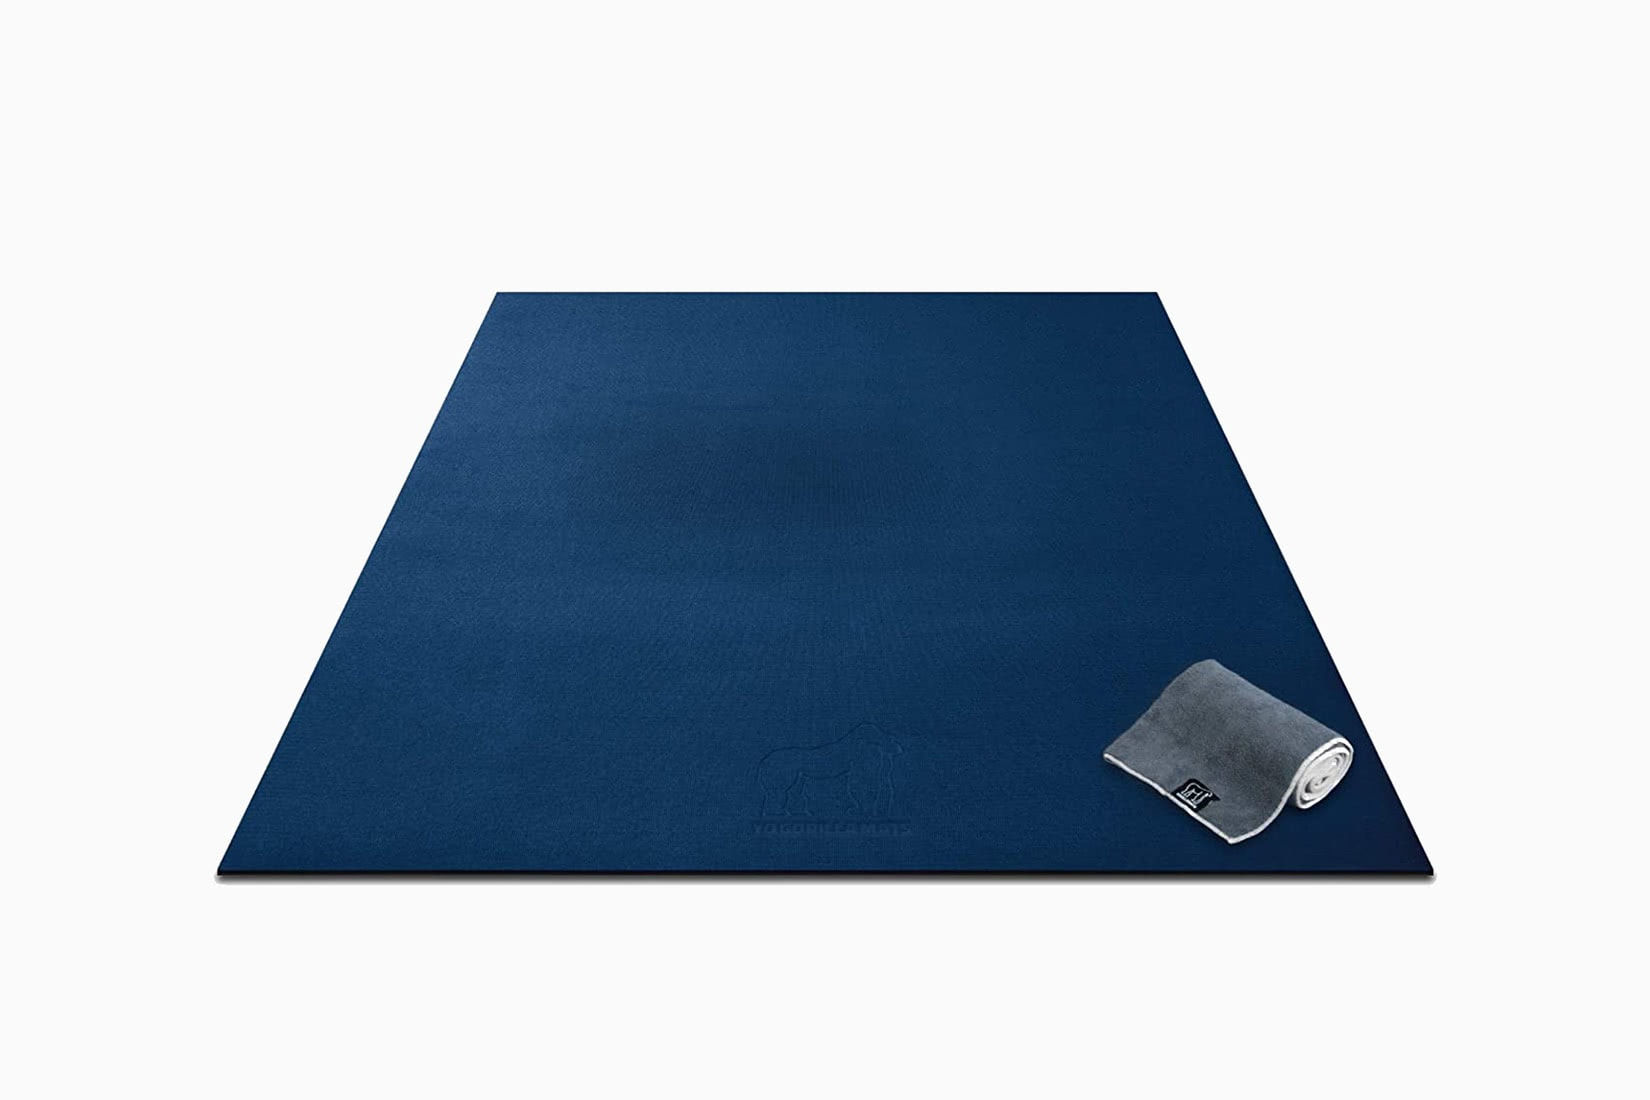 best yoga exercise mat large Gorilla review - Luxe Digital